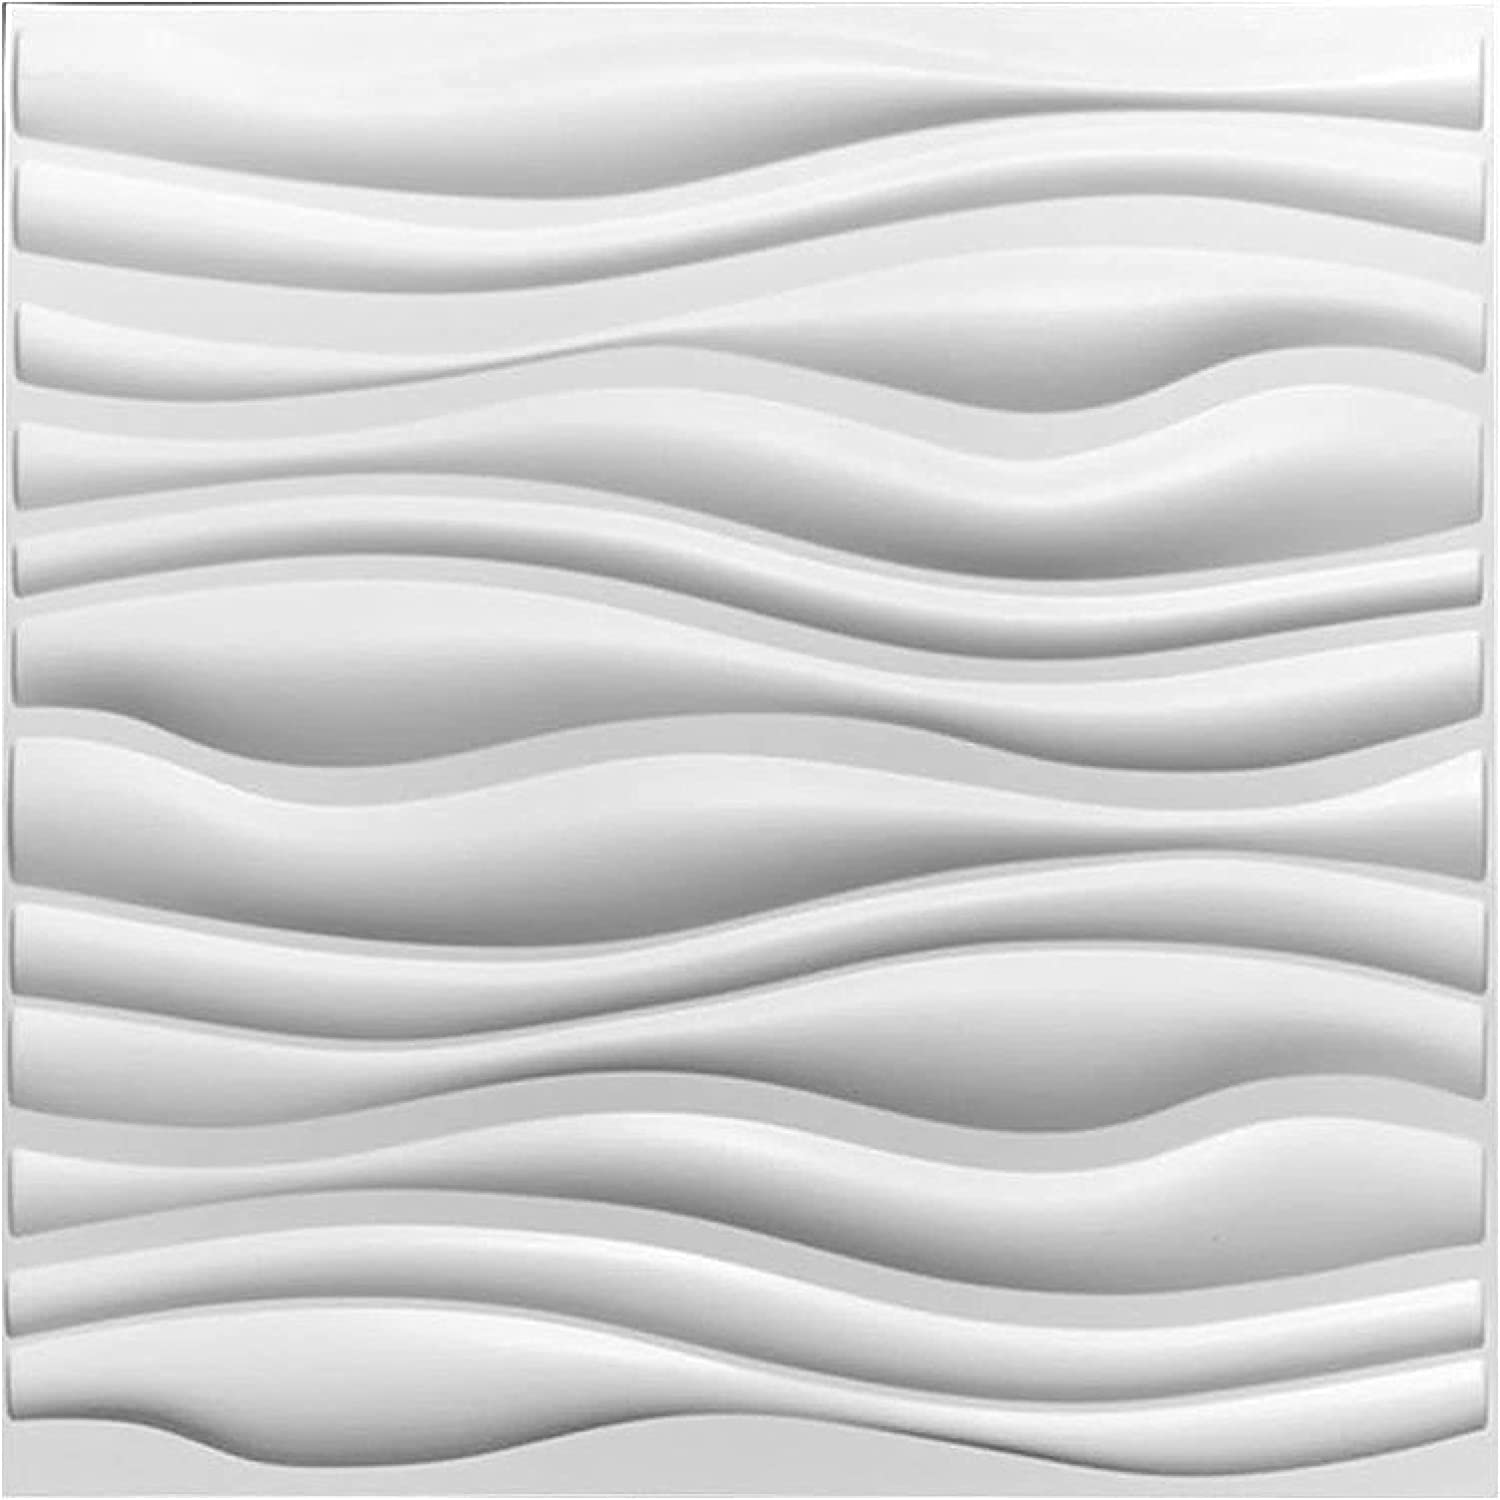 Shipping included MADG 3D Texture Wall Tiles Panel Limited time cheap sale Decorative Decor